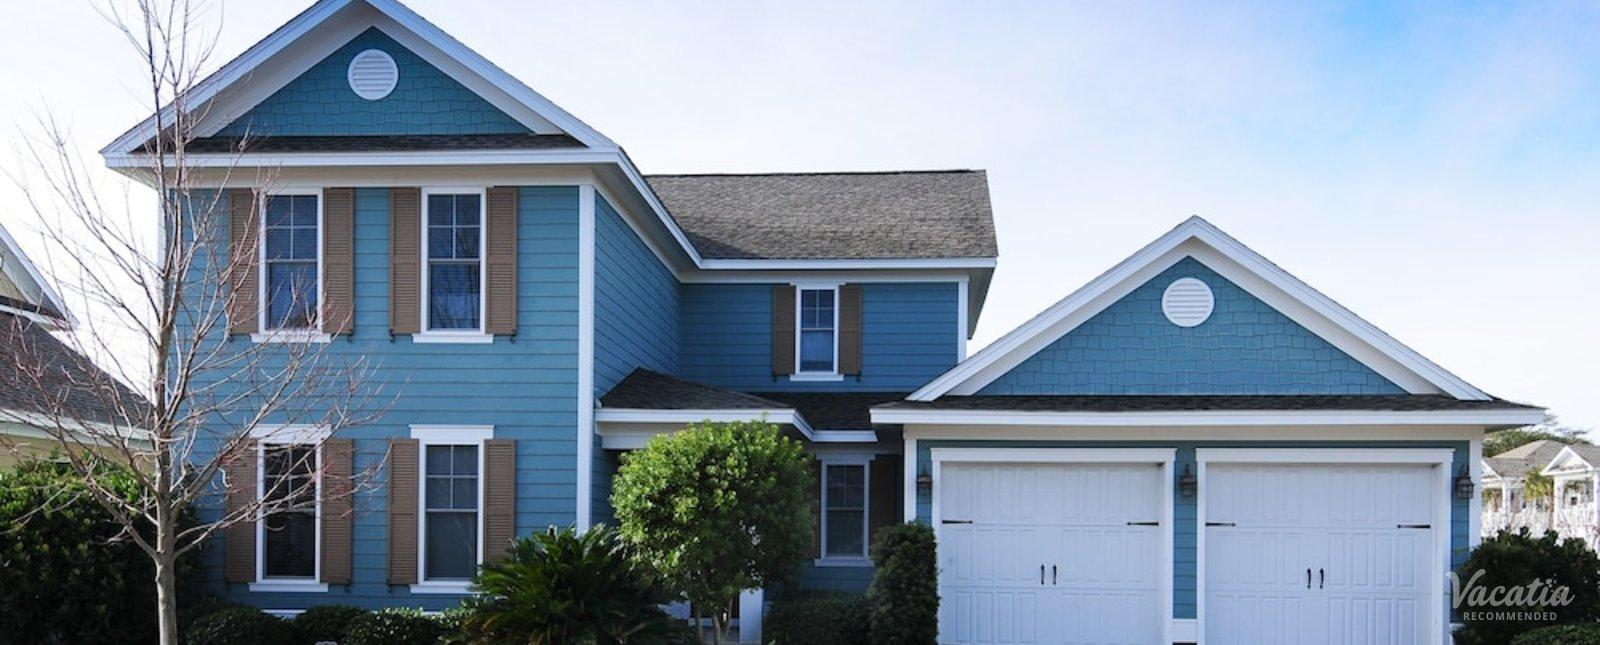 The Cottages at North Beach Plantation | Myrtle Beach ...